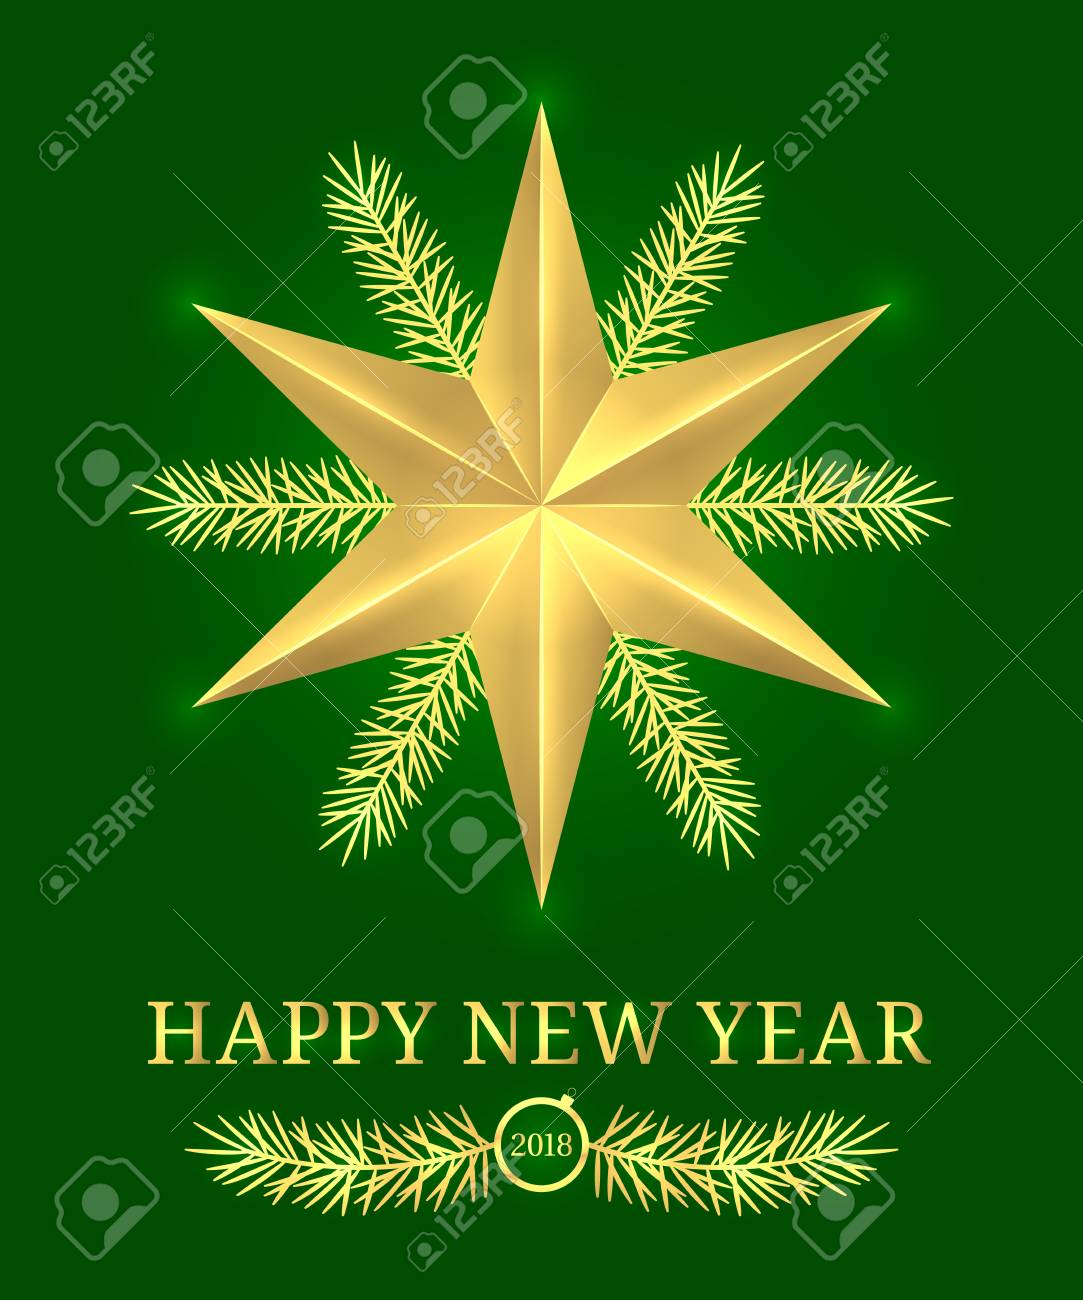 Happy New Year 2018 Vector Holiday Banner With New Year Greeting